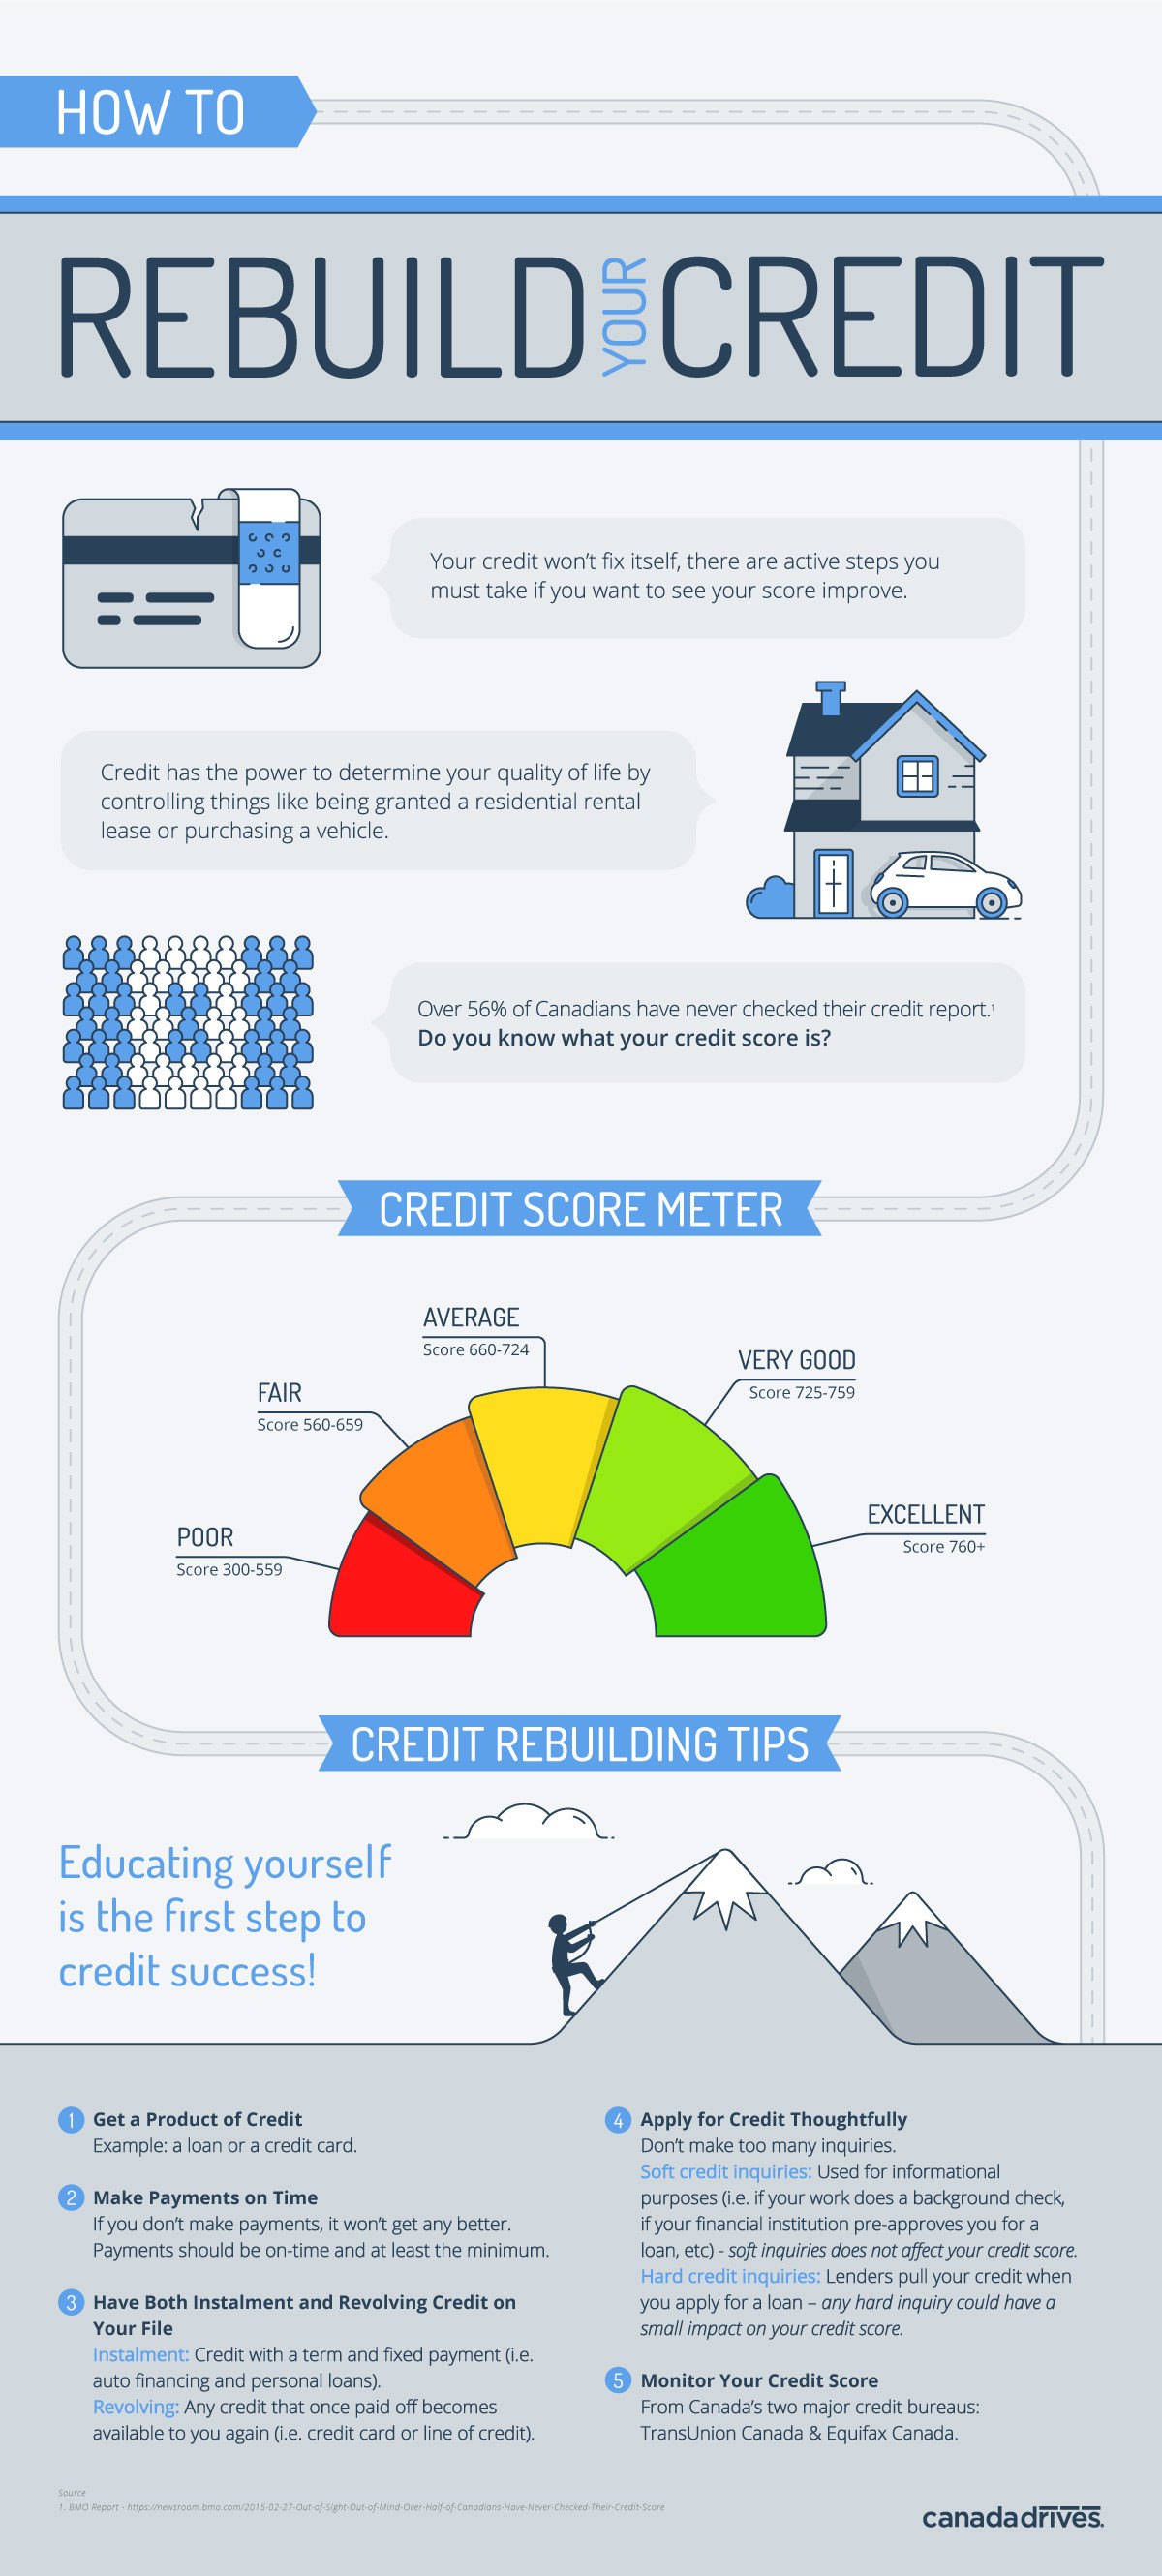 Where to get a loan with average credit check